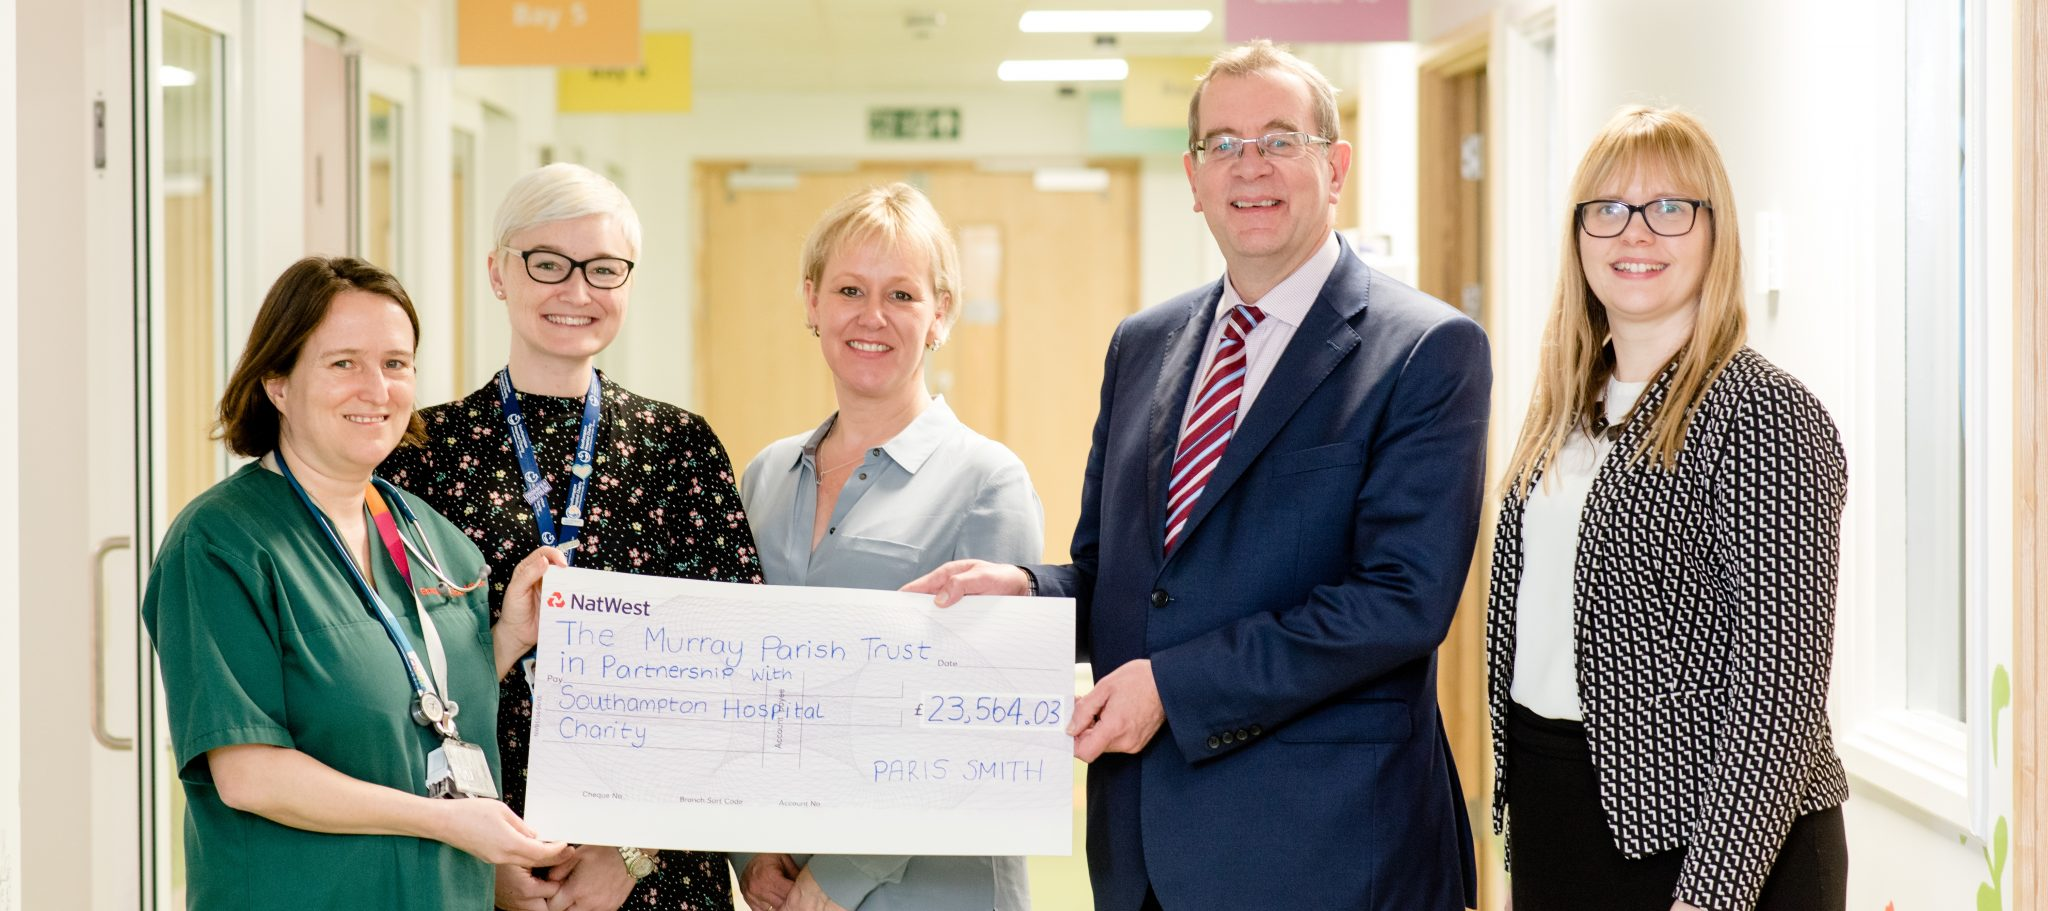 Paris Smith present cheque for over £23,500 to its Charity of the Year